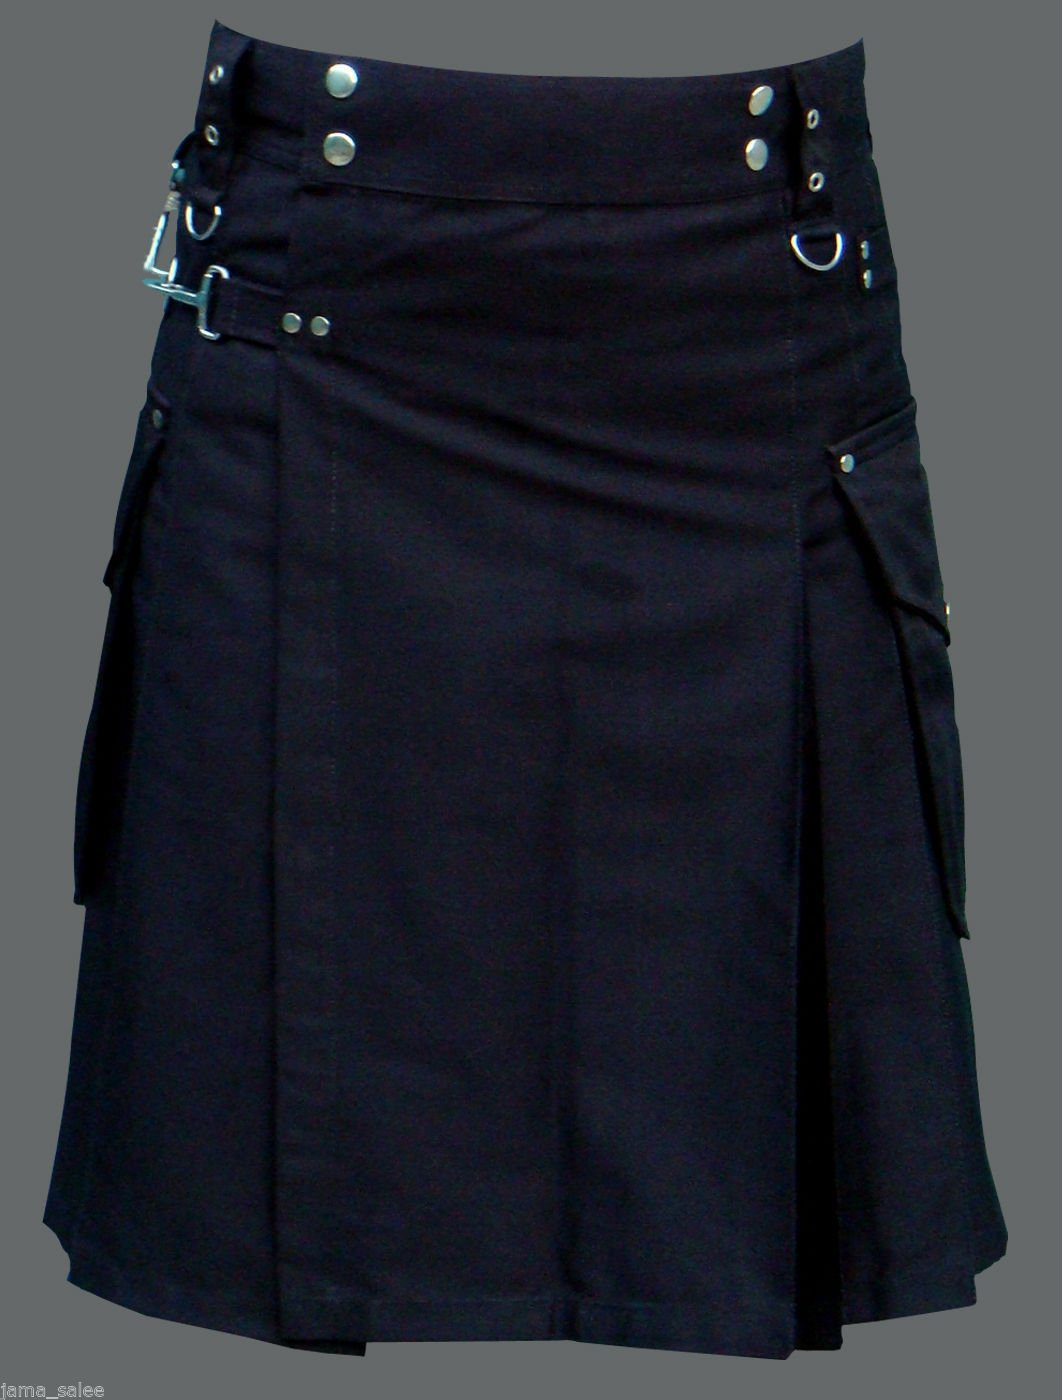 Deluxe Black Cotton Kilt Handmade Utility Gothic Modern Kilt with Cargo Pockets Waist Size 30 to Fit